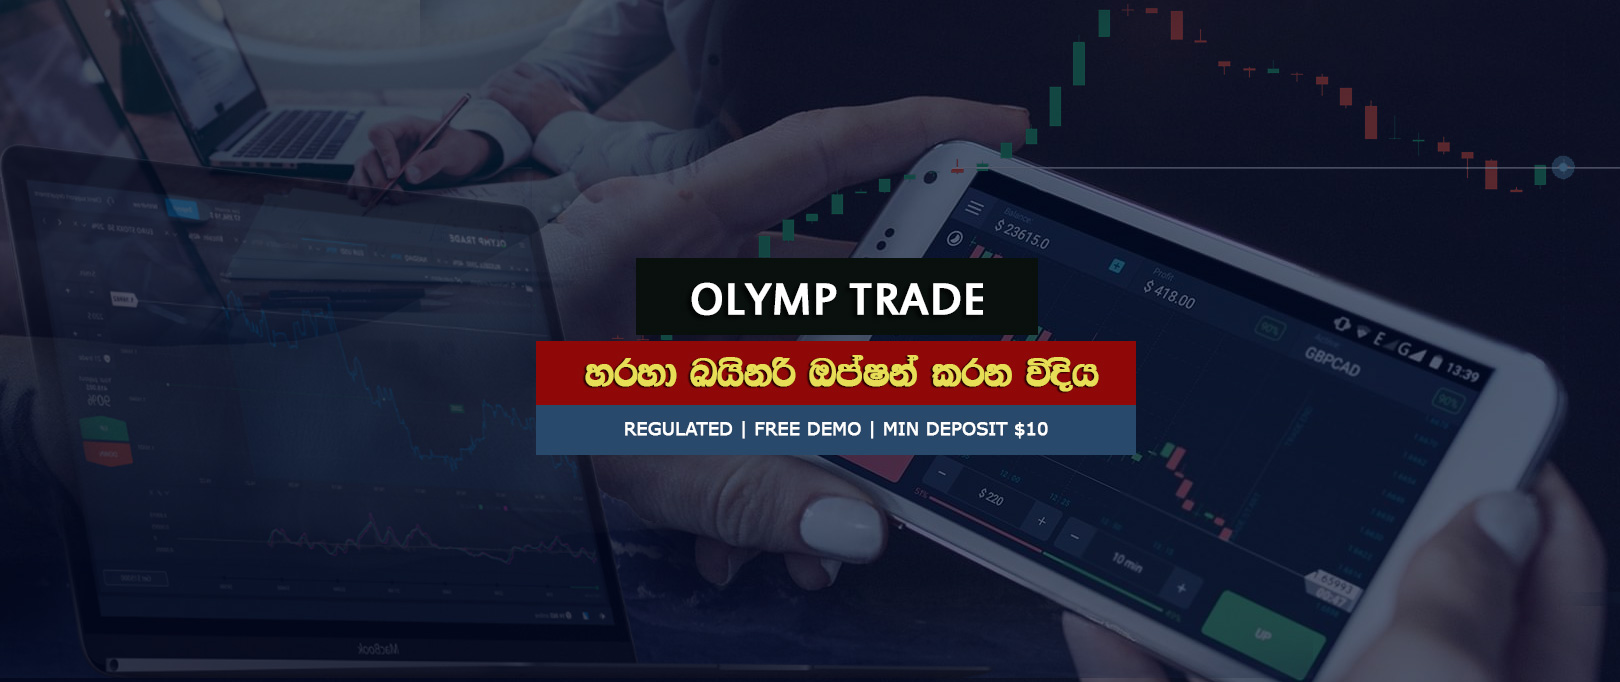 olymp trade regulated binary option broker tutorial in sinhala sri lanka by prathilaba